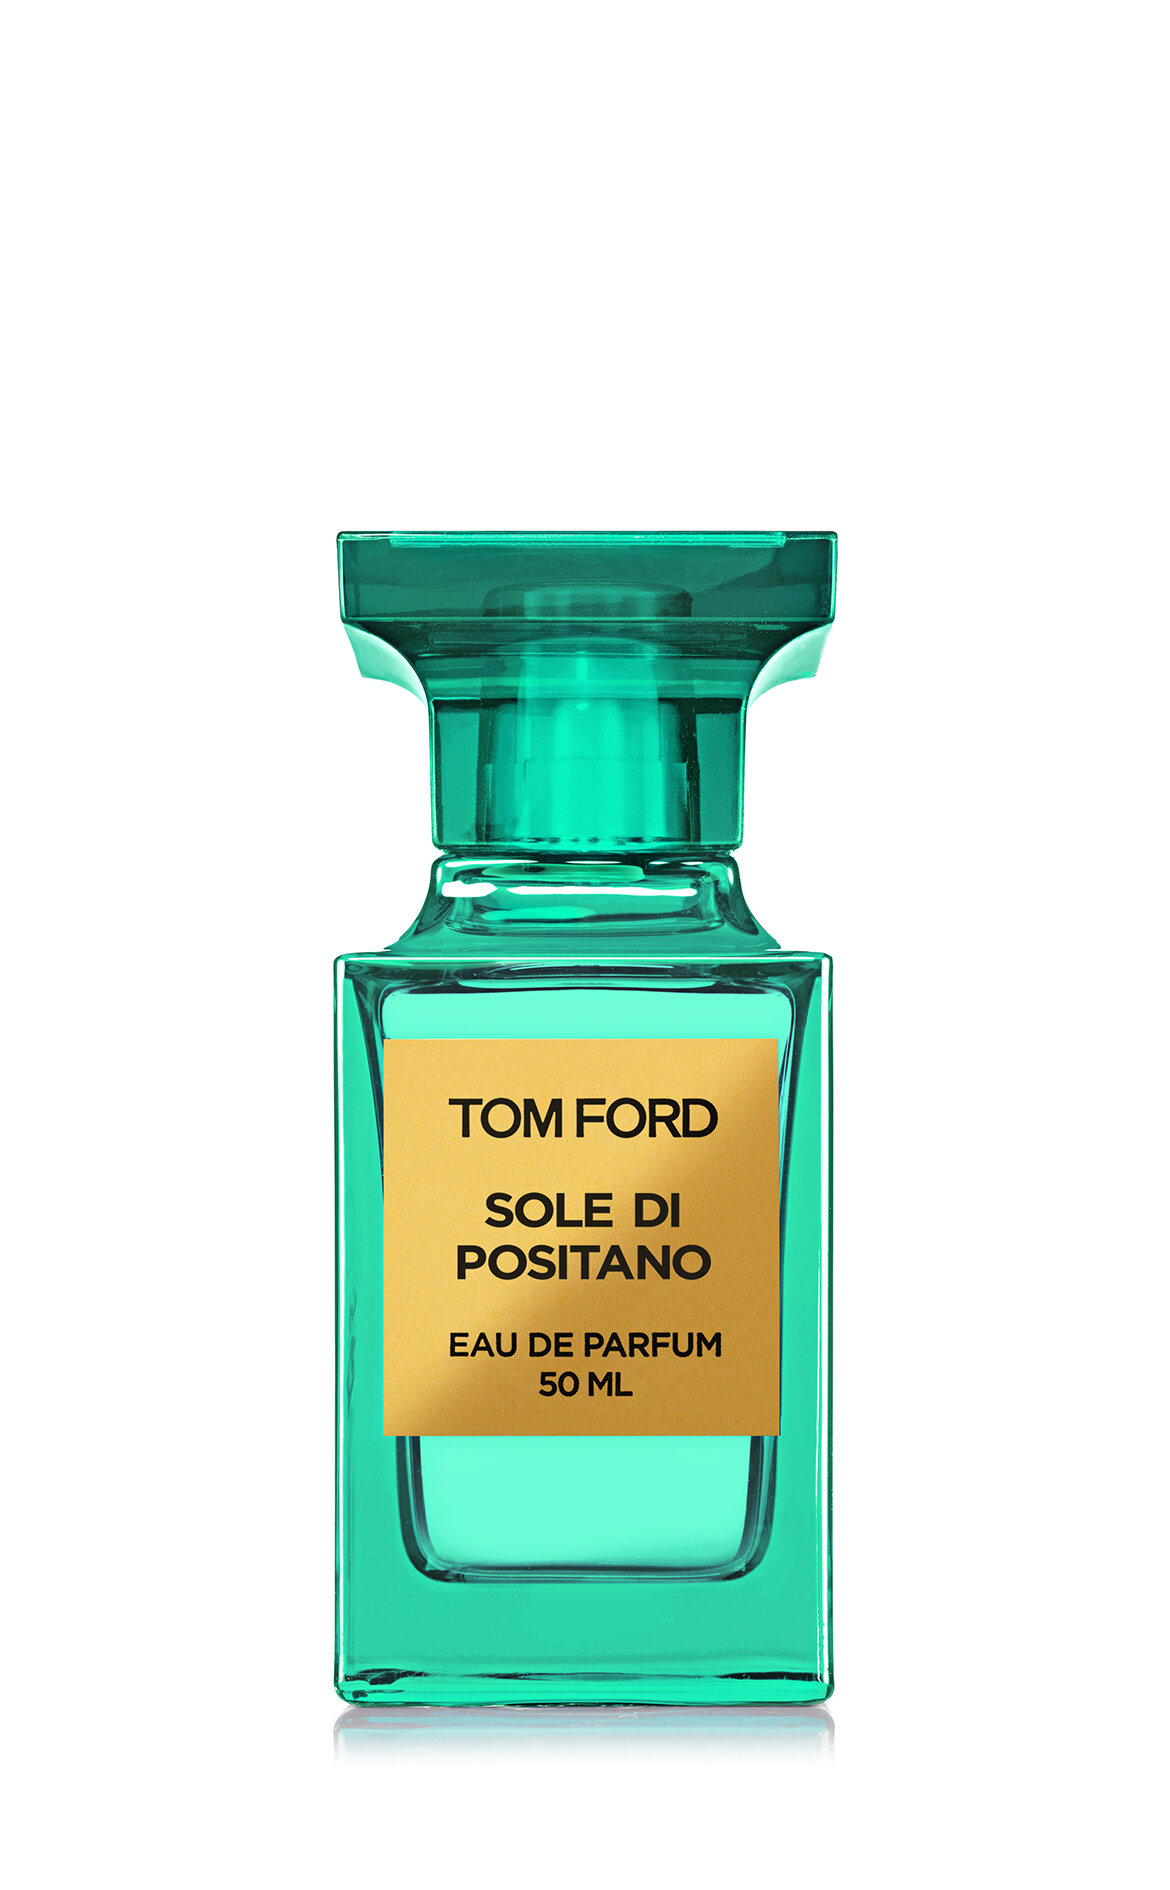 Tom Ford Sole Di Positano Parfüm 50 ml